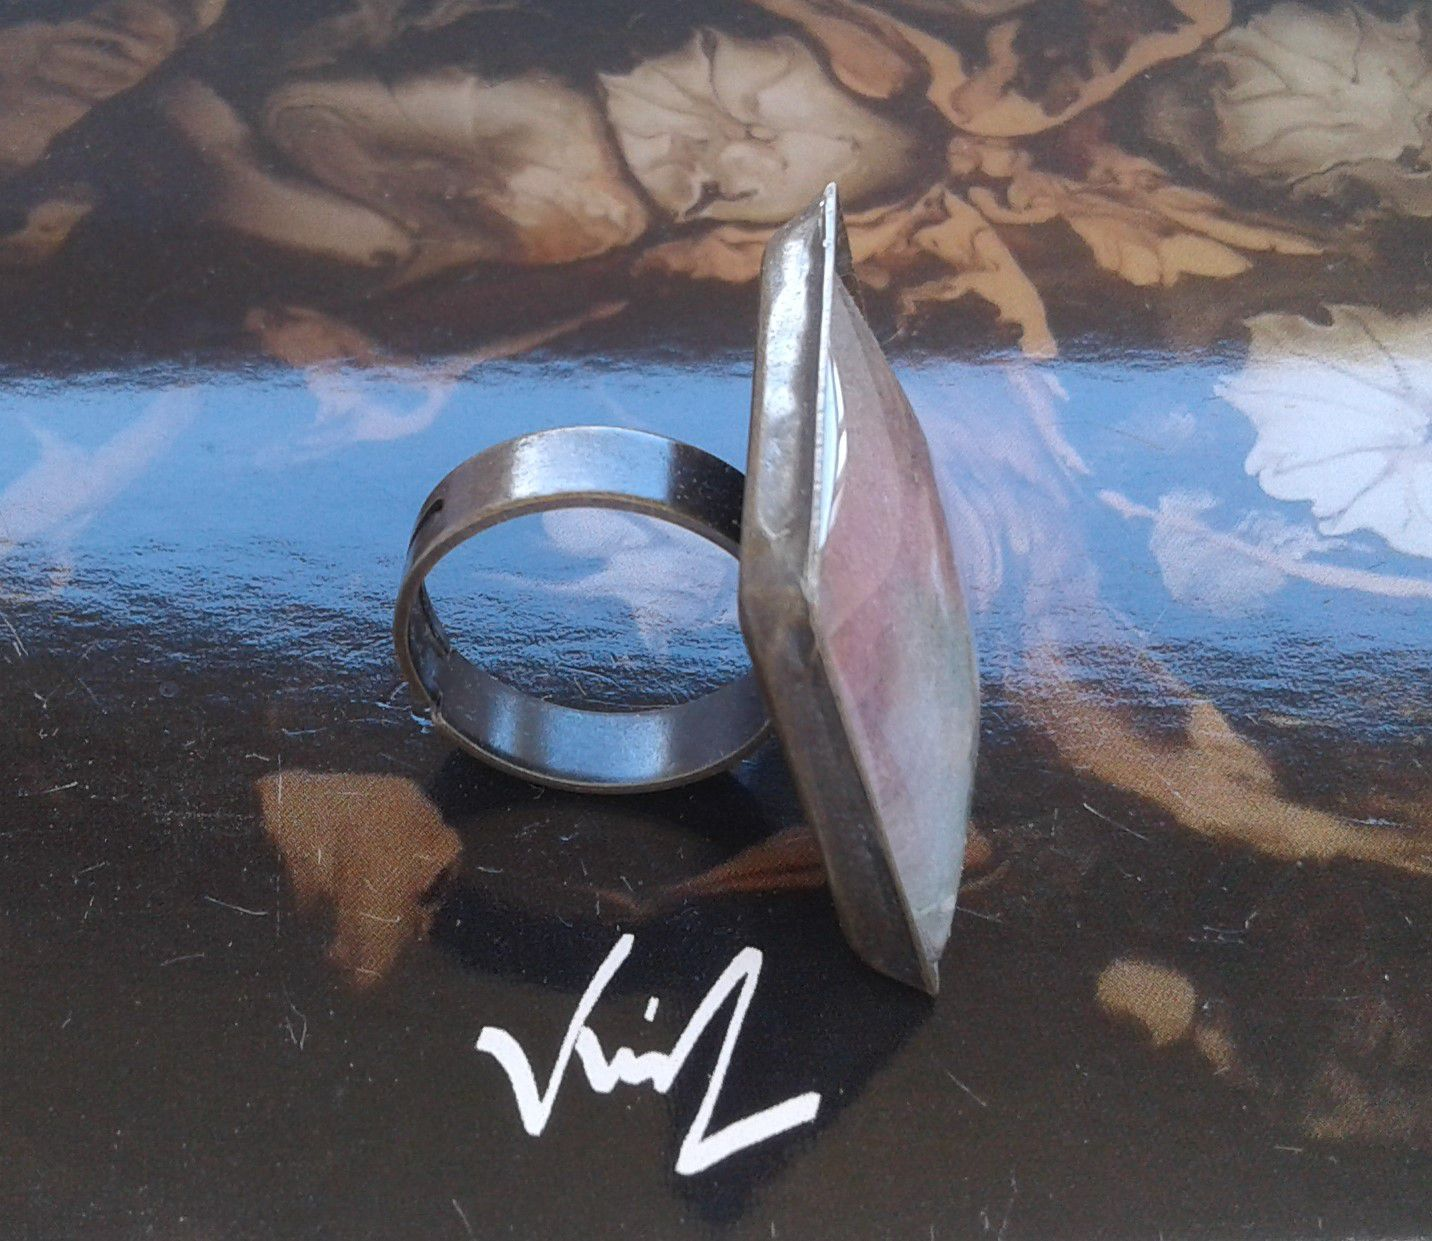 Fait mains en france, par artiste peintre,aquarelle originale isabelle k,rouge marron vert,bague ajustable,cabochon carré 20mm,laiton bronze,boho bobo gothique,fashion punk edouardien,art deco art nouveau,cadeau fete anniversaire,victorien baroque